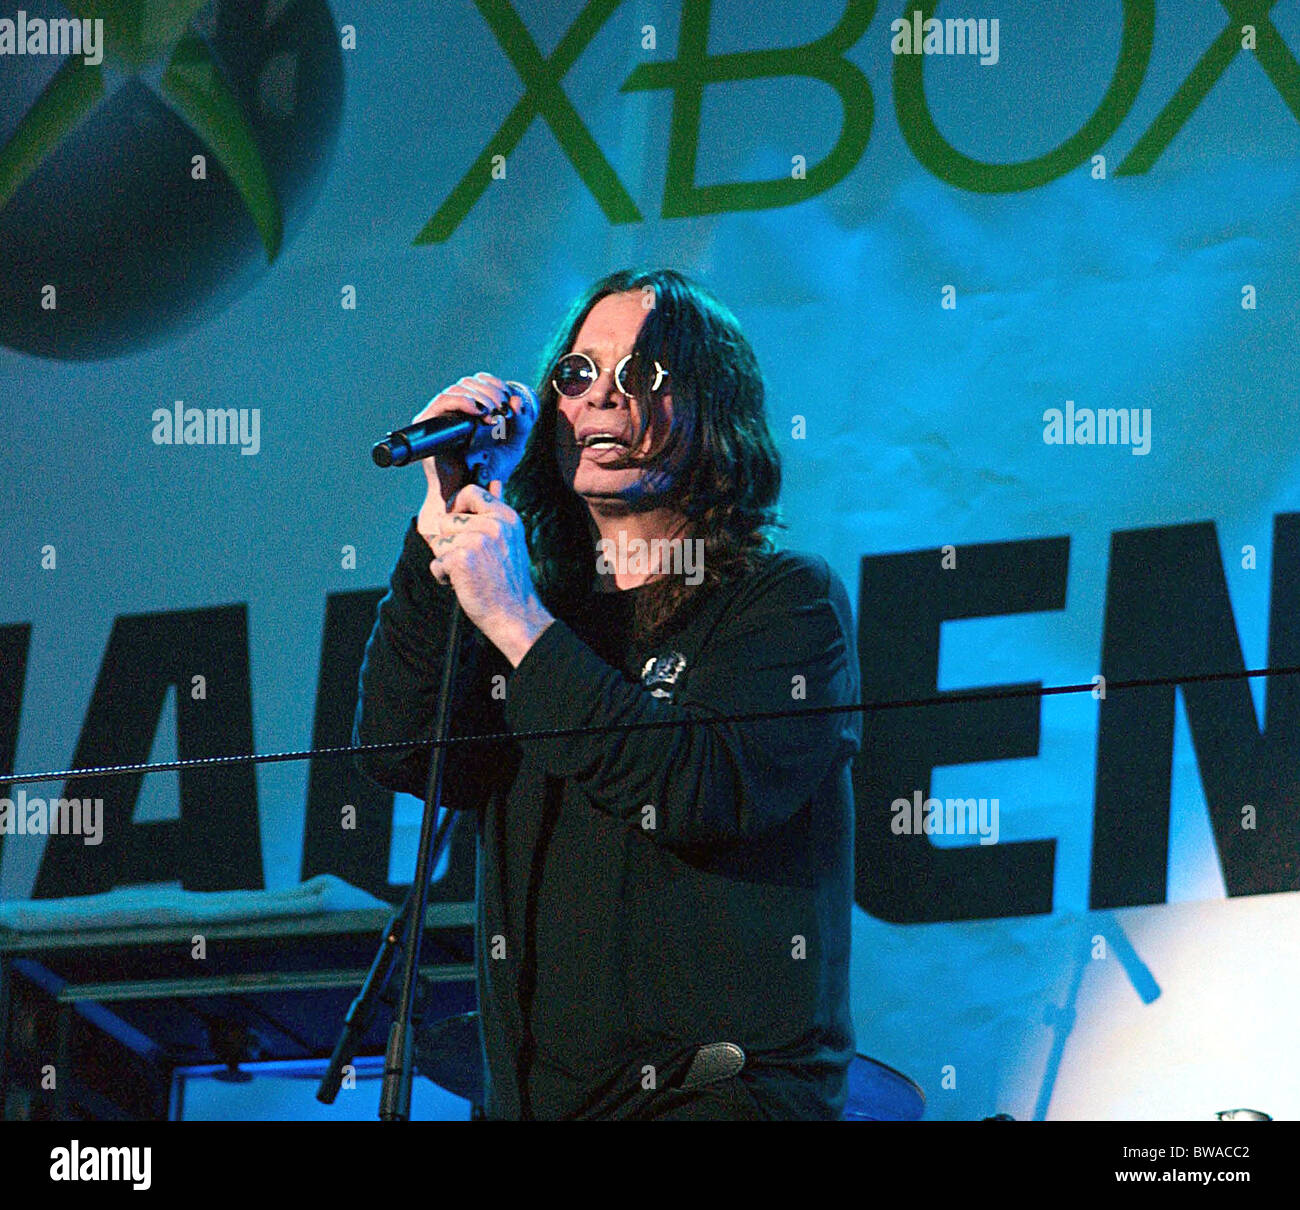 Launch Of Madden NFL 08 Videogame with Ozzy Osbourne Concert Stock